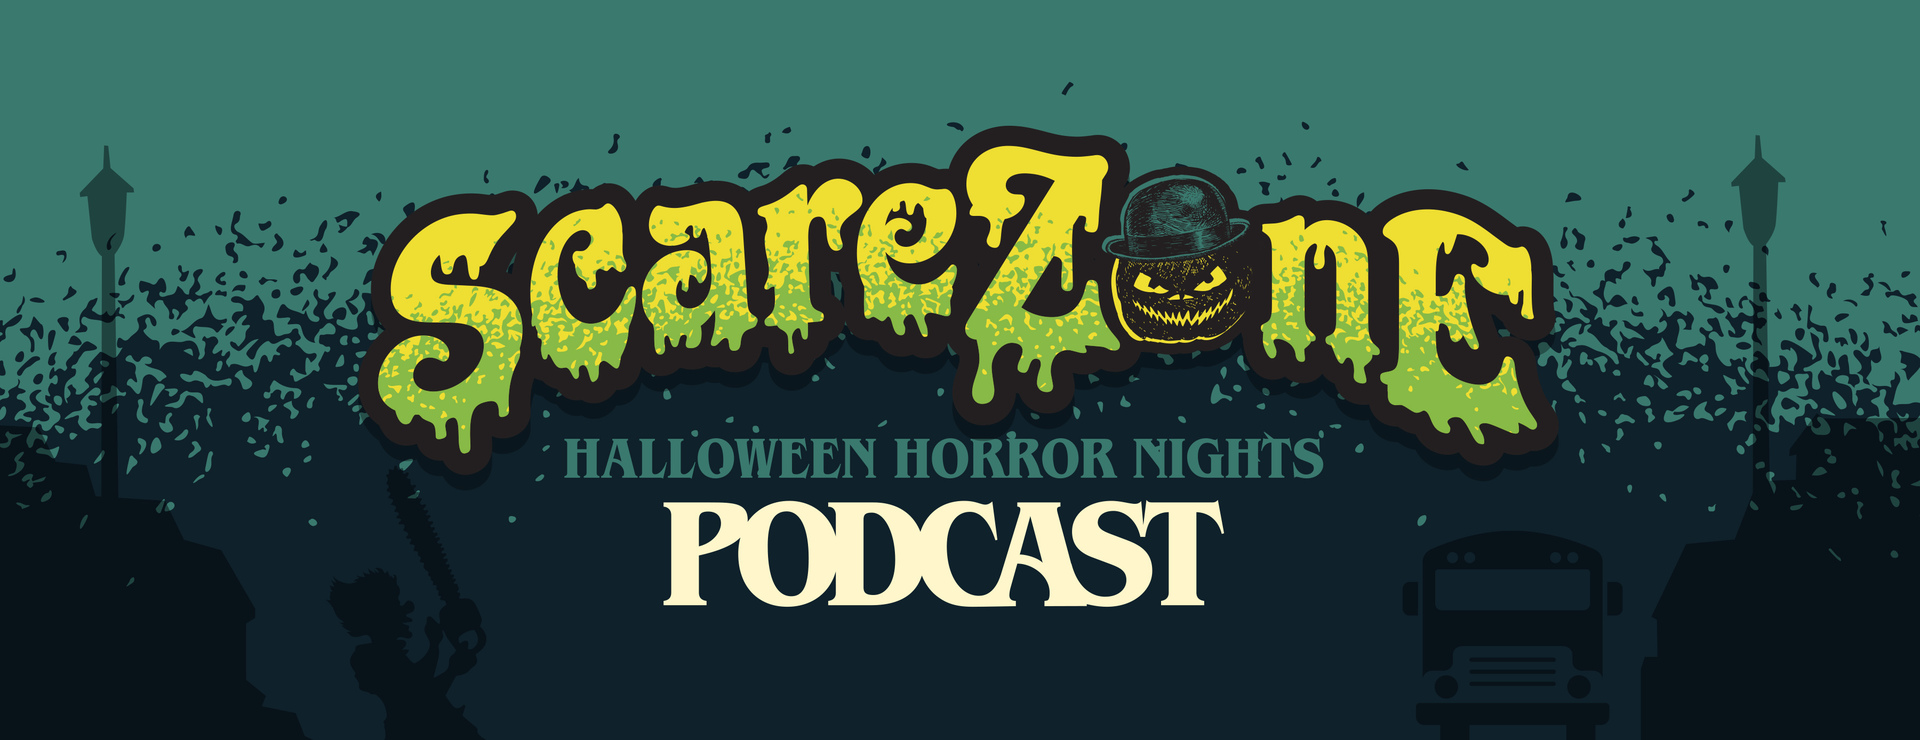 ScareZone : Halloween Horror Nights Podcast Store Store